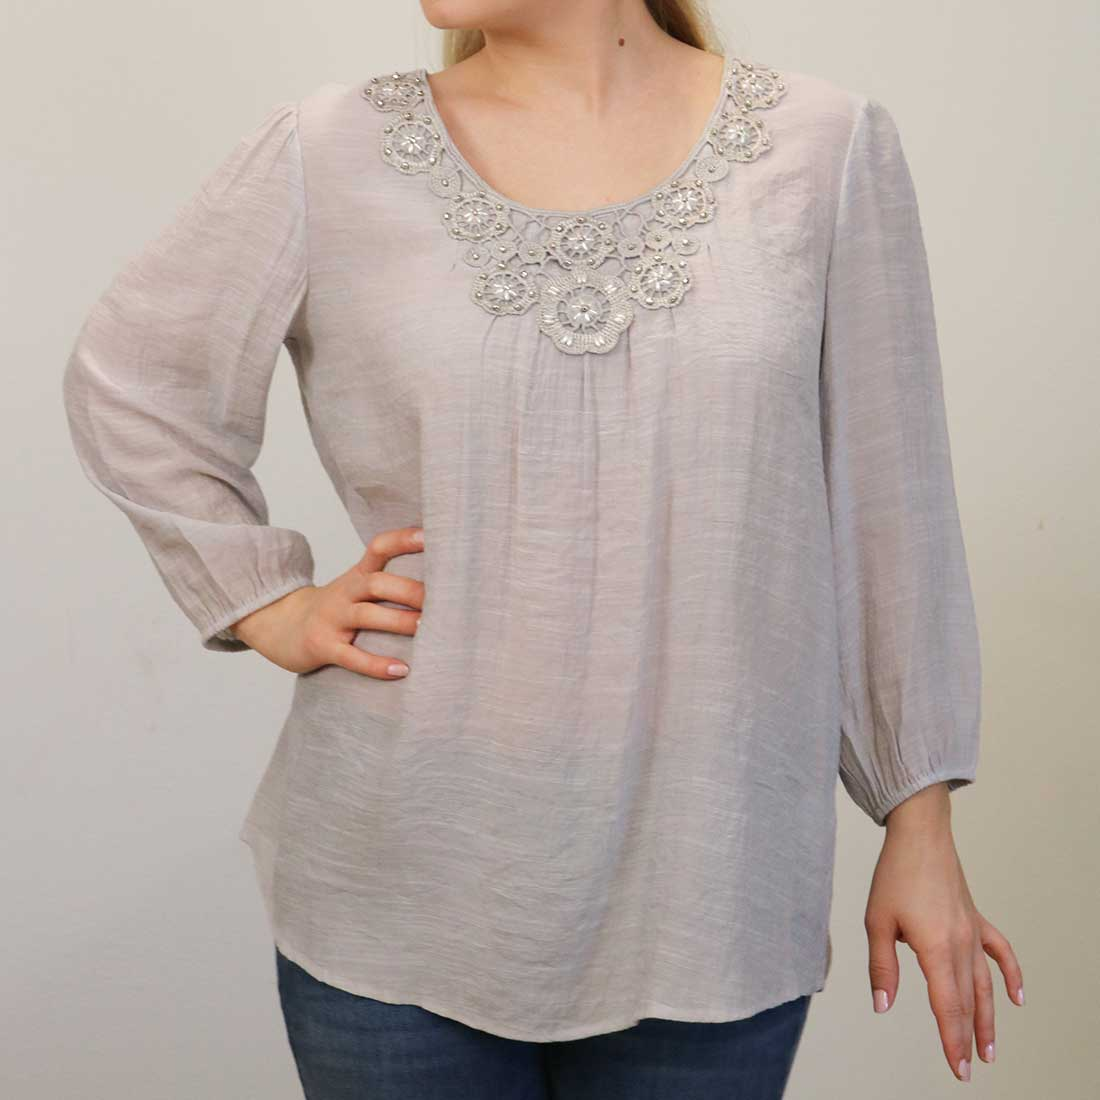 Light Gray Embroidered Pearl Yoke Top